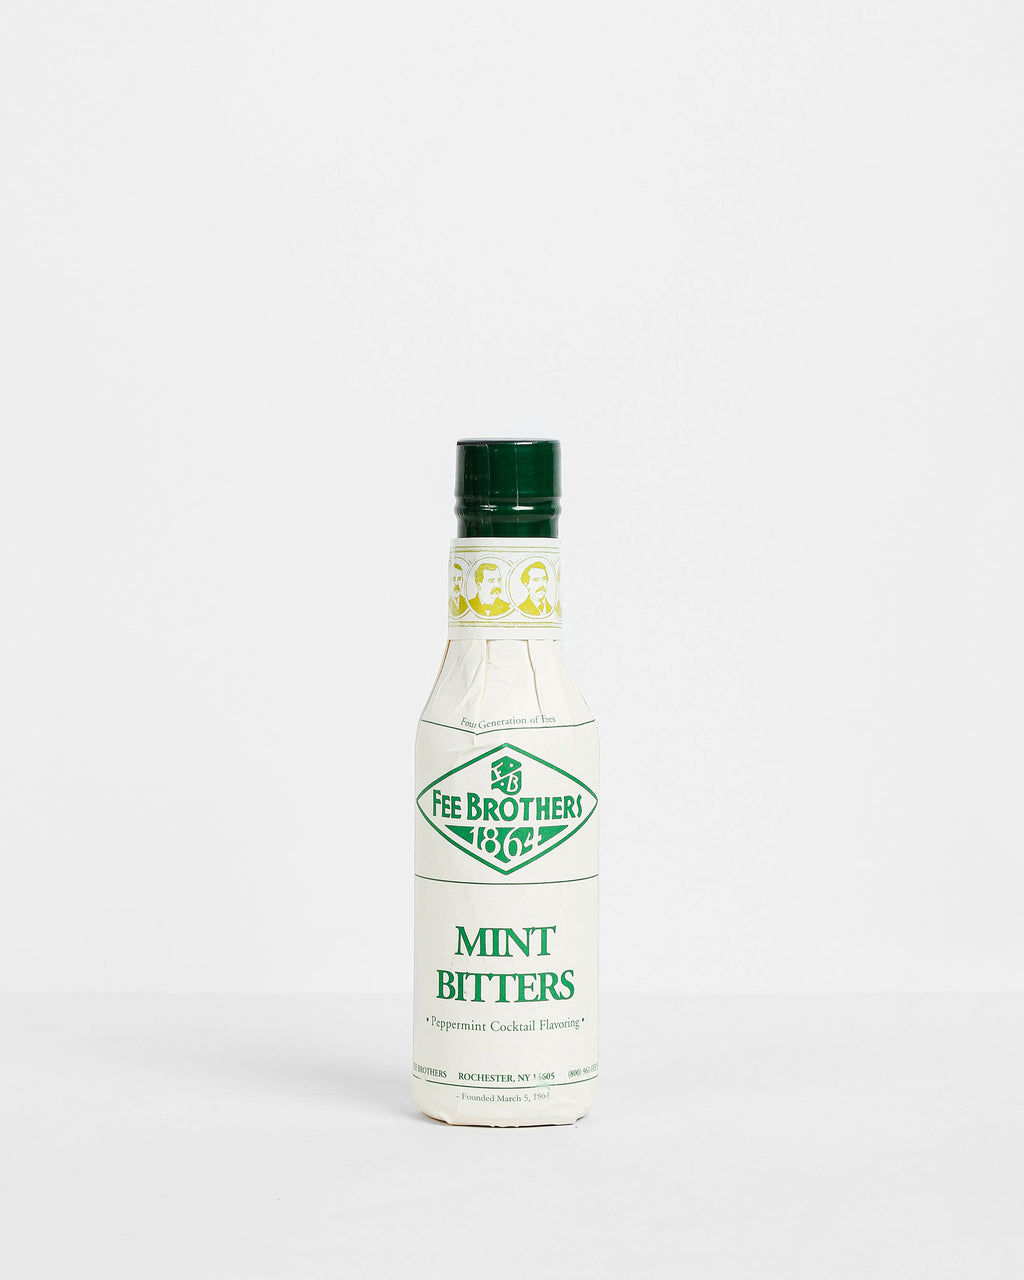 Fee Brother's - Mint Bitters